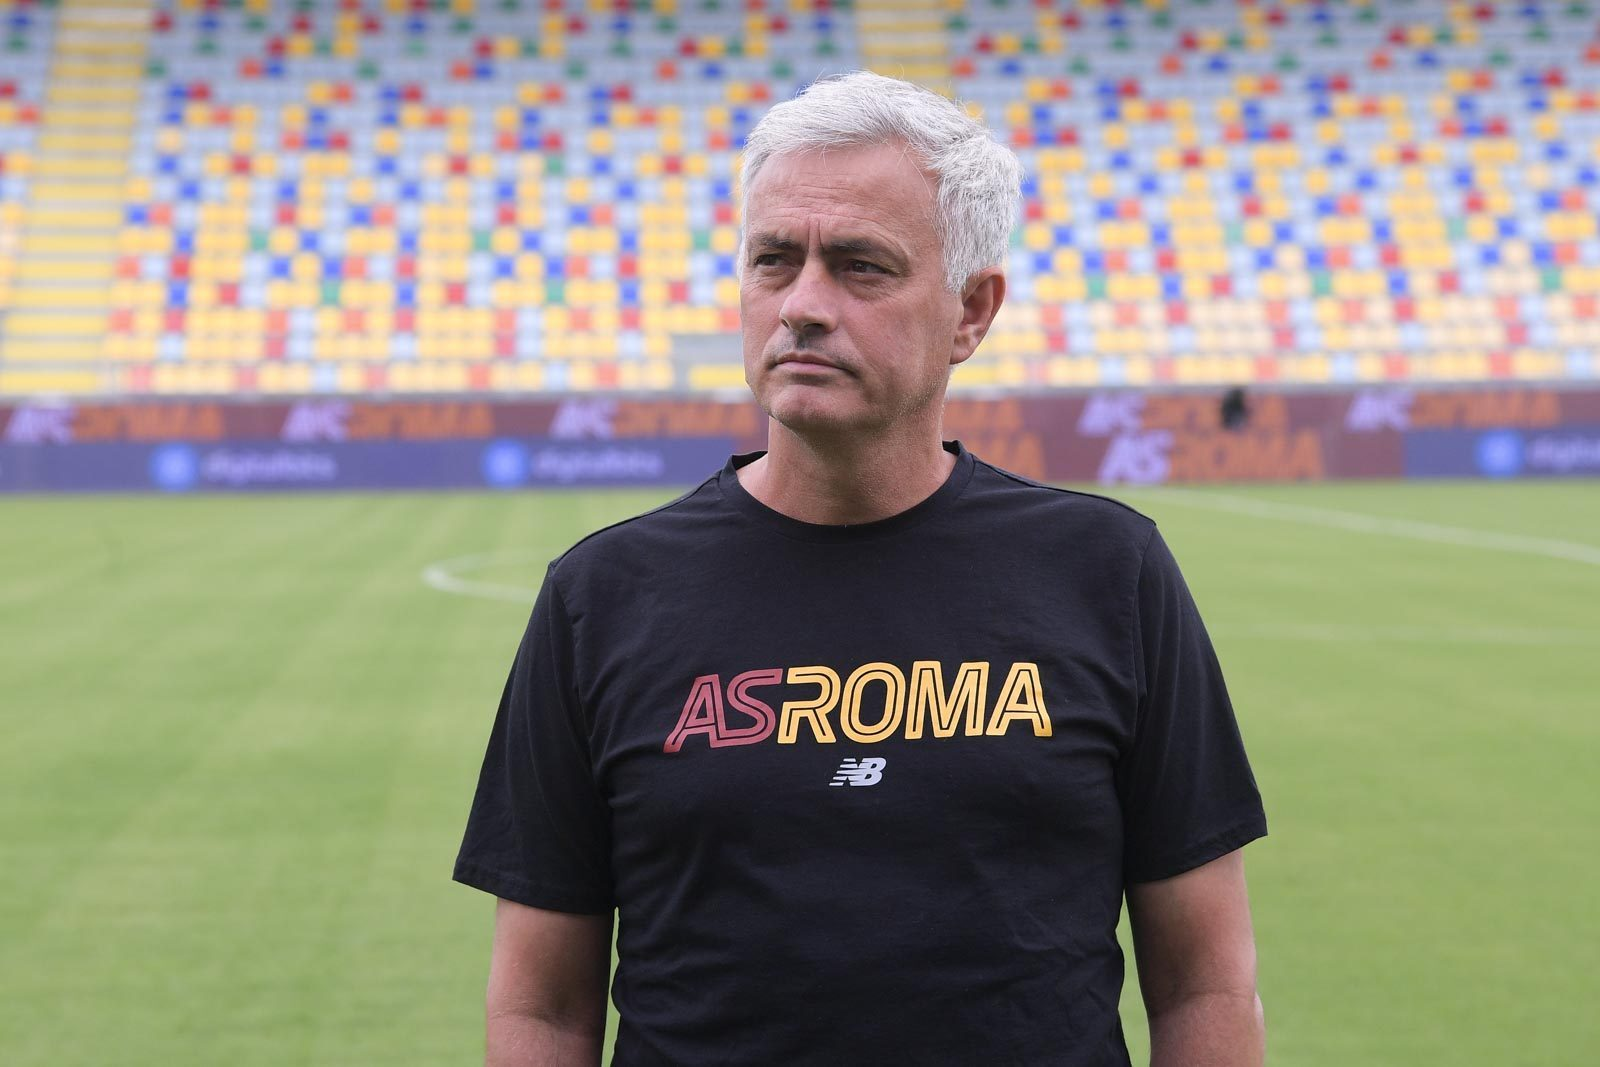 Mourinho hailed Abraham's ambition as he joined Roma